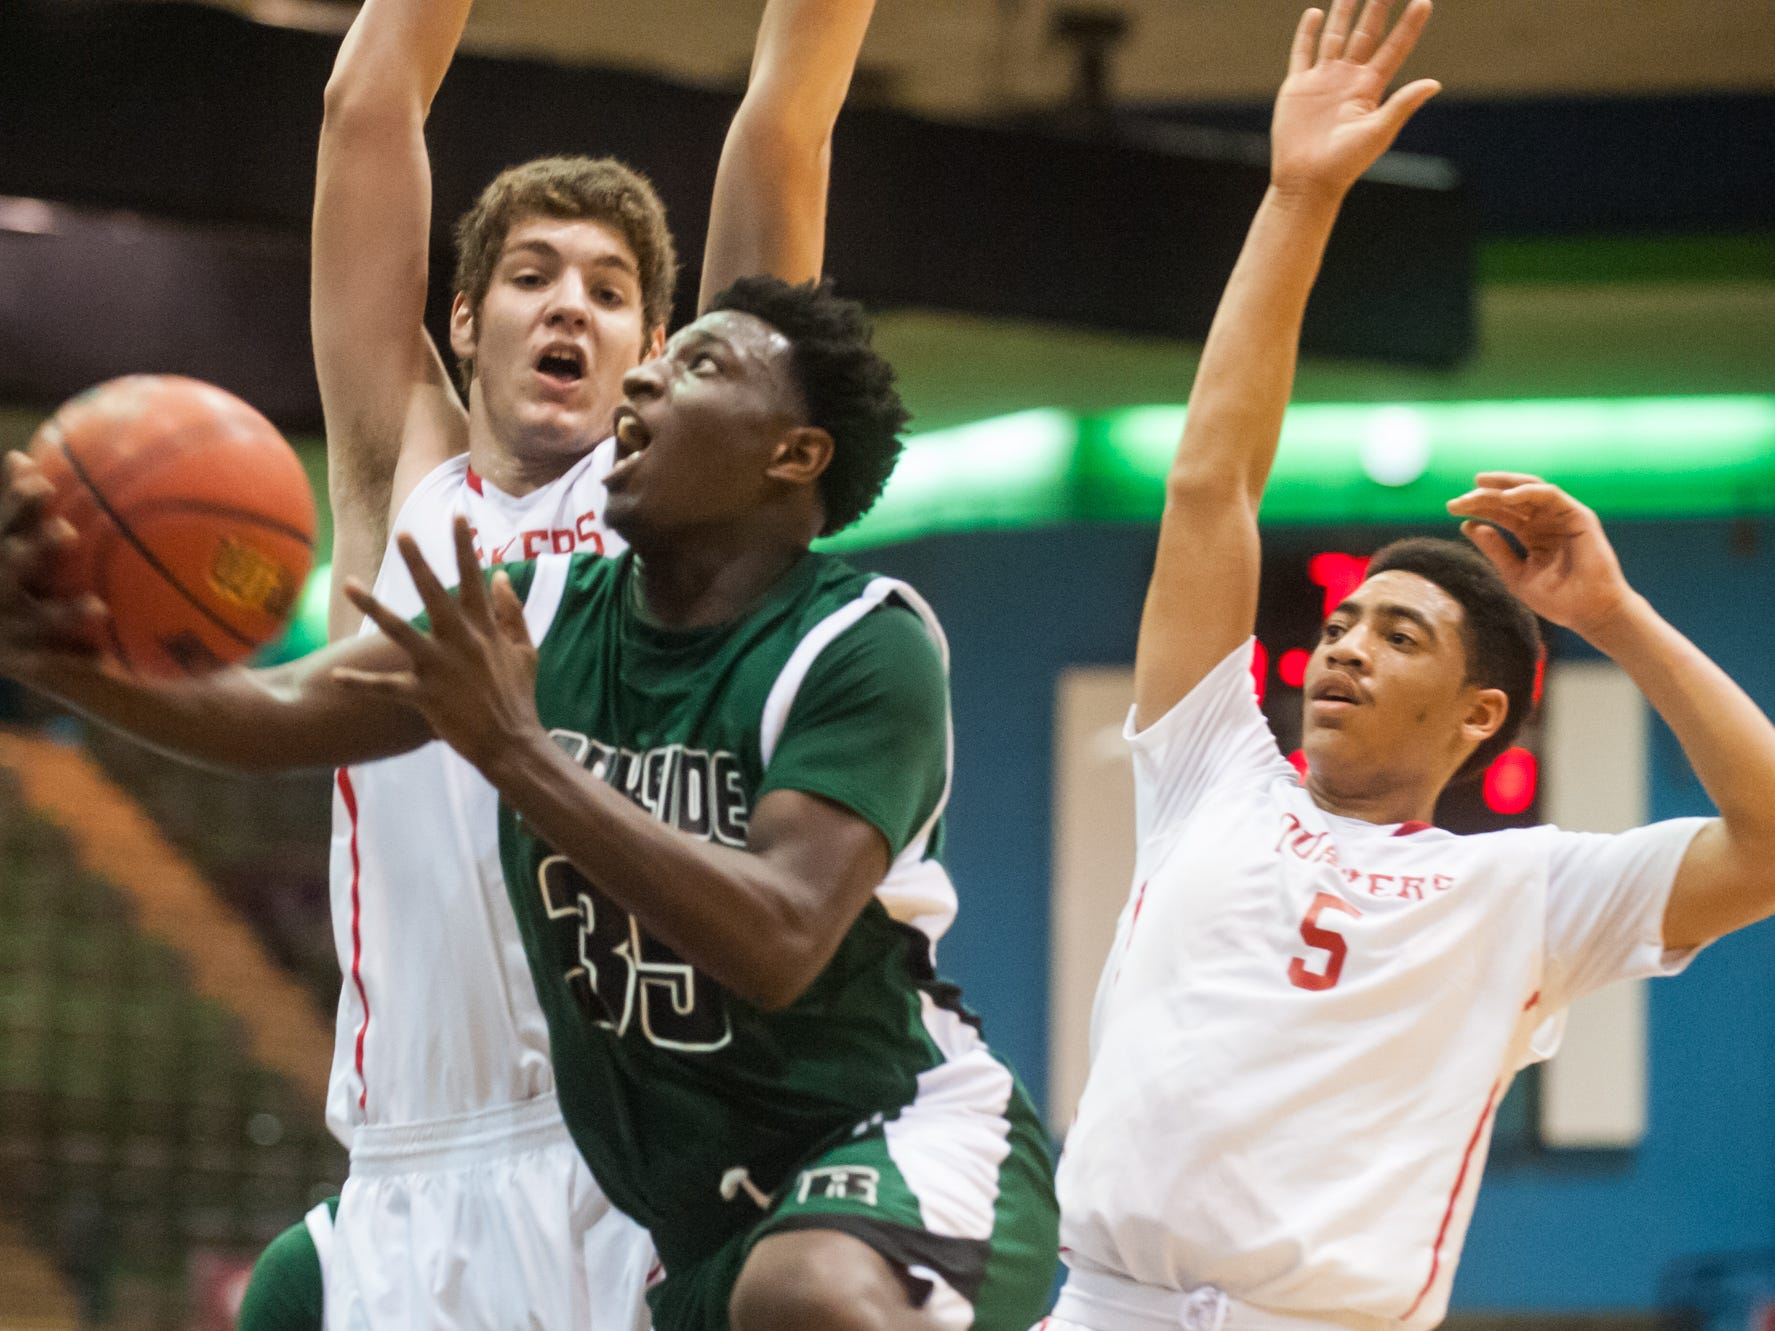 Parkside guard Dajour Diggs (35) drives to the basket against Friends School of Baltimore as part of the DMVelite Showcase during the Governor's Challenge at the Wicomico County Youth and Civic Center on Saturday evening.